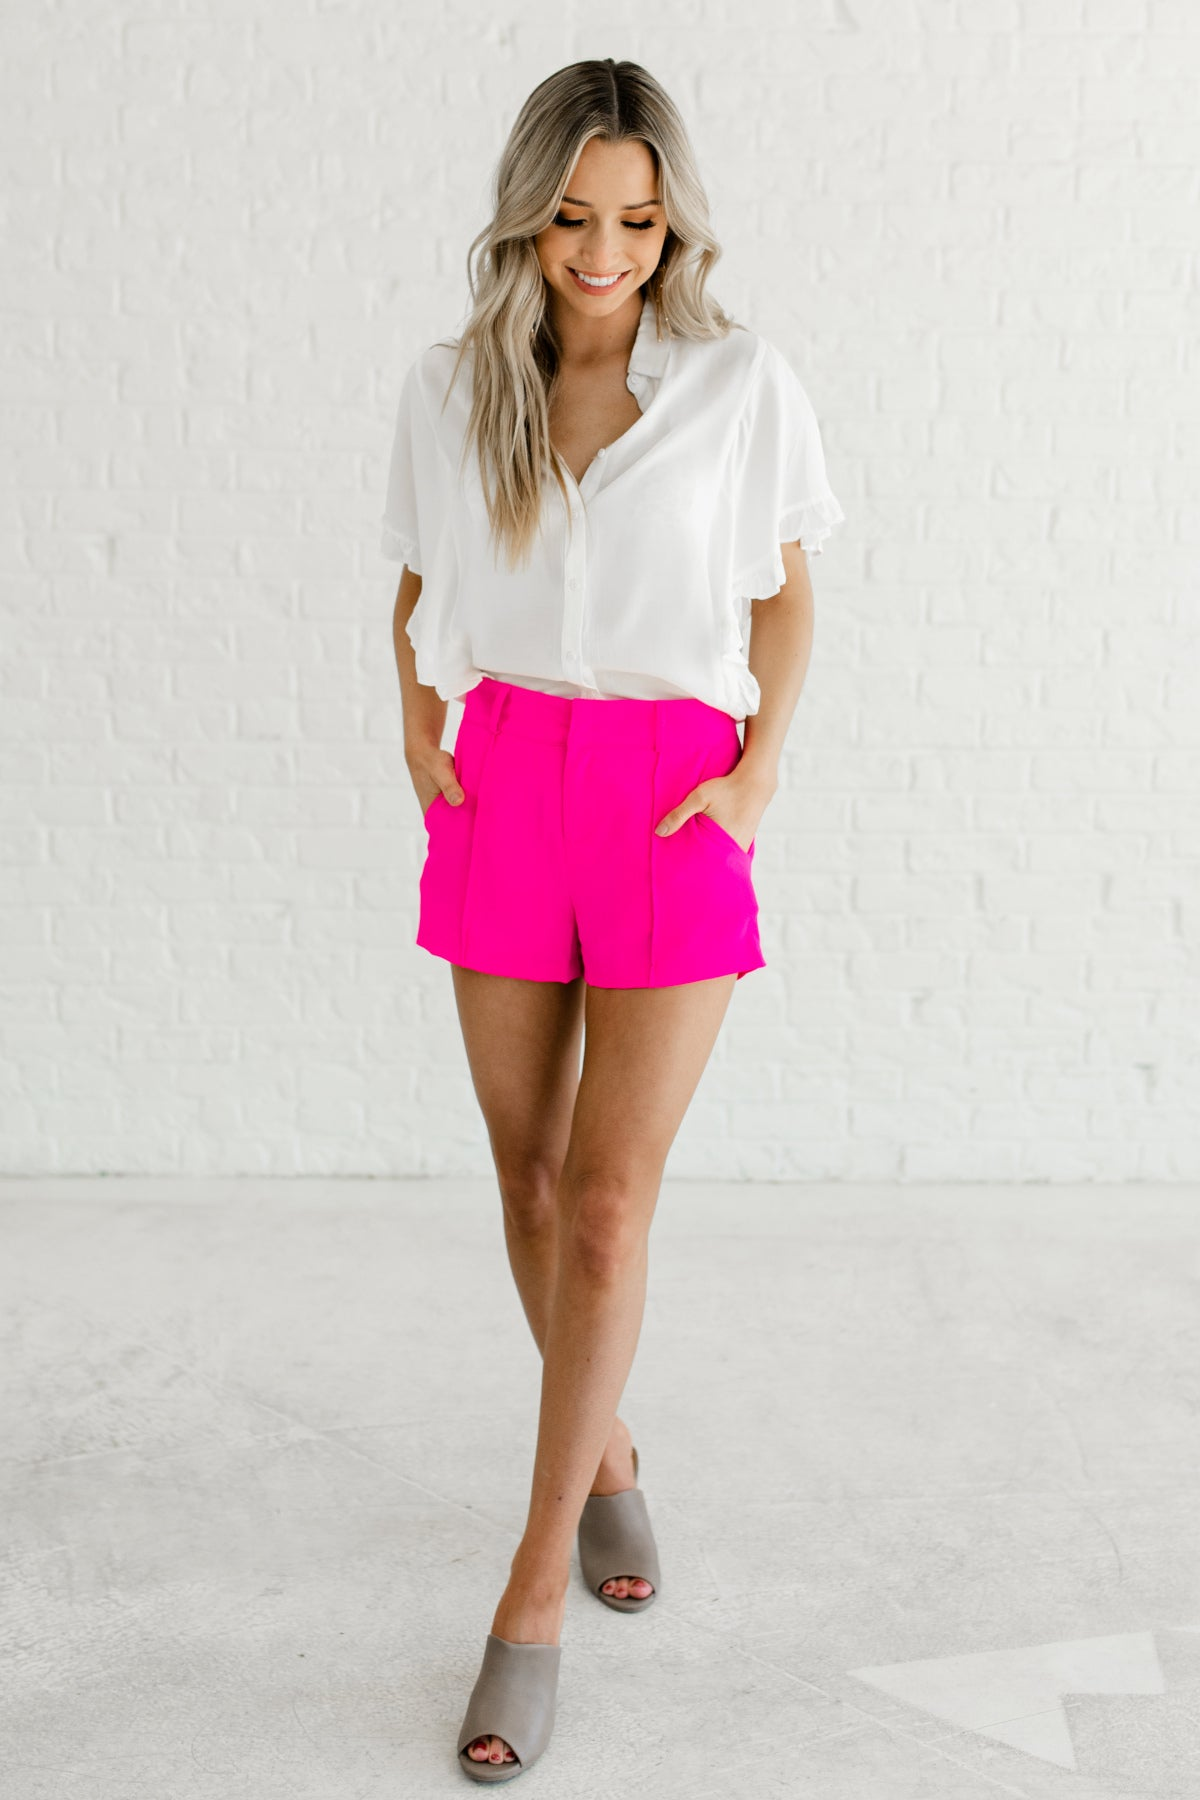 Hot Pink Pleated Short Shorts Cute Business Casual for Women Affordable Online Boutique